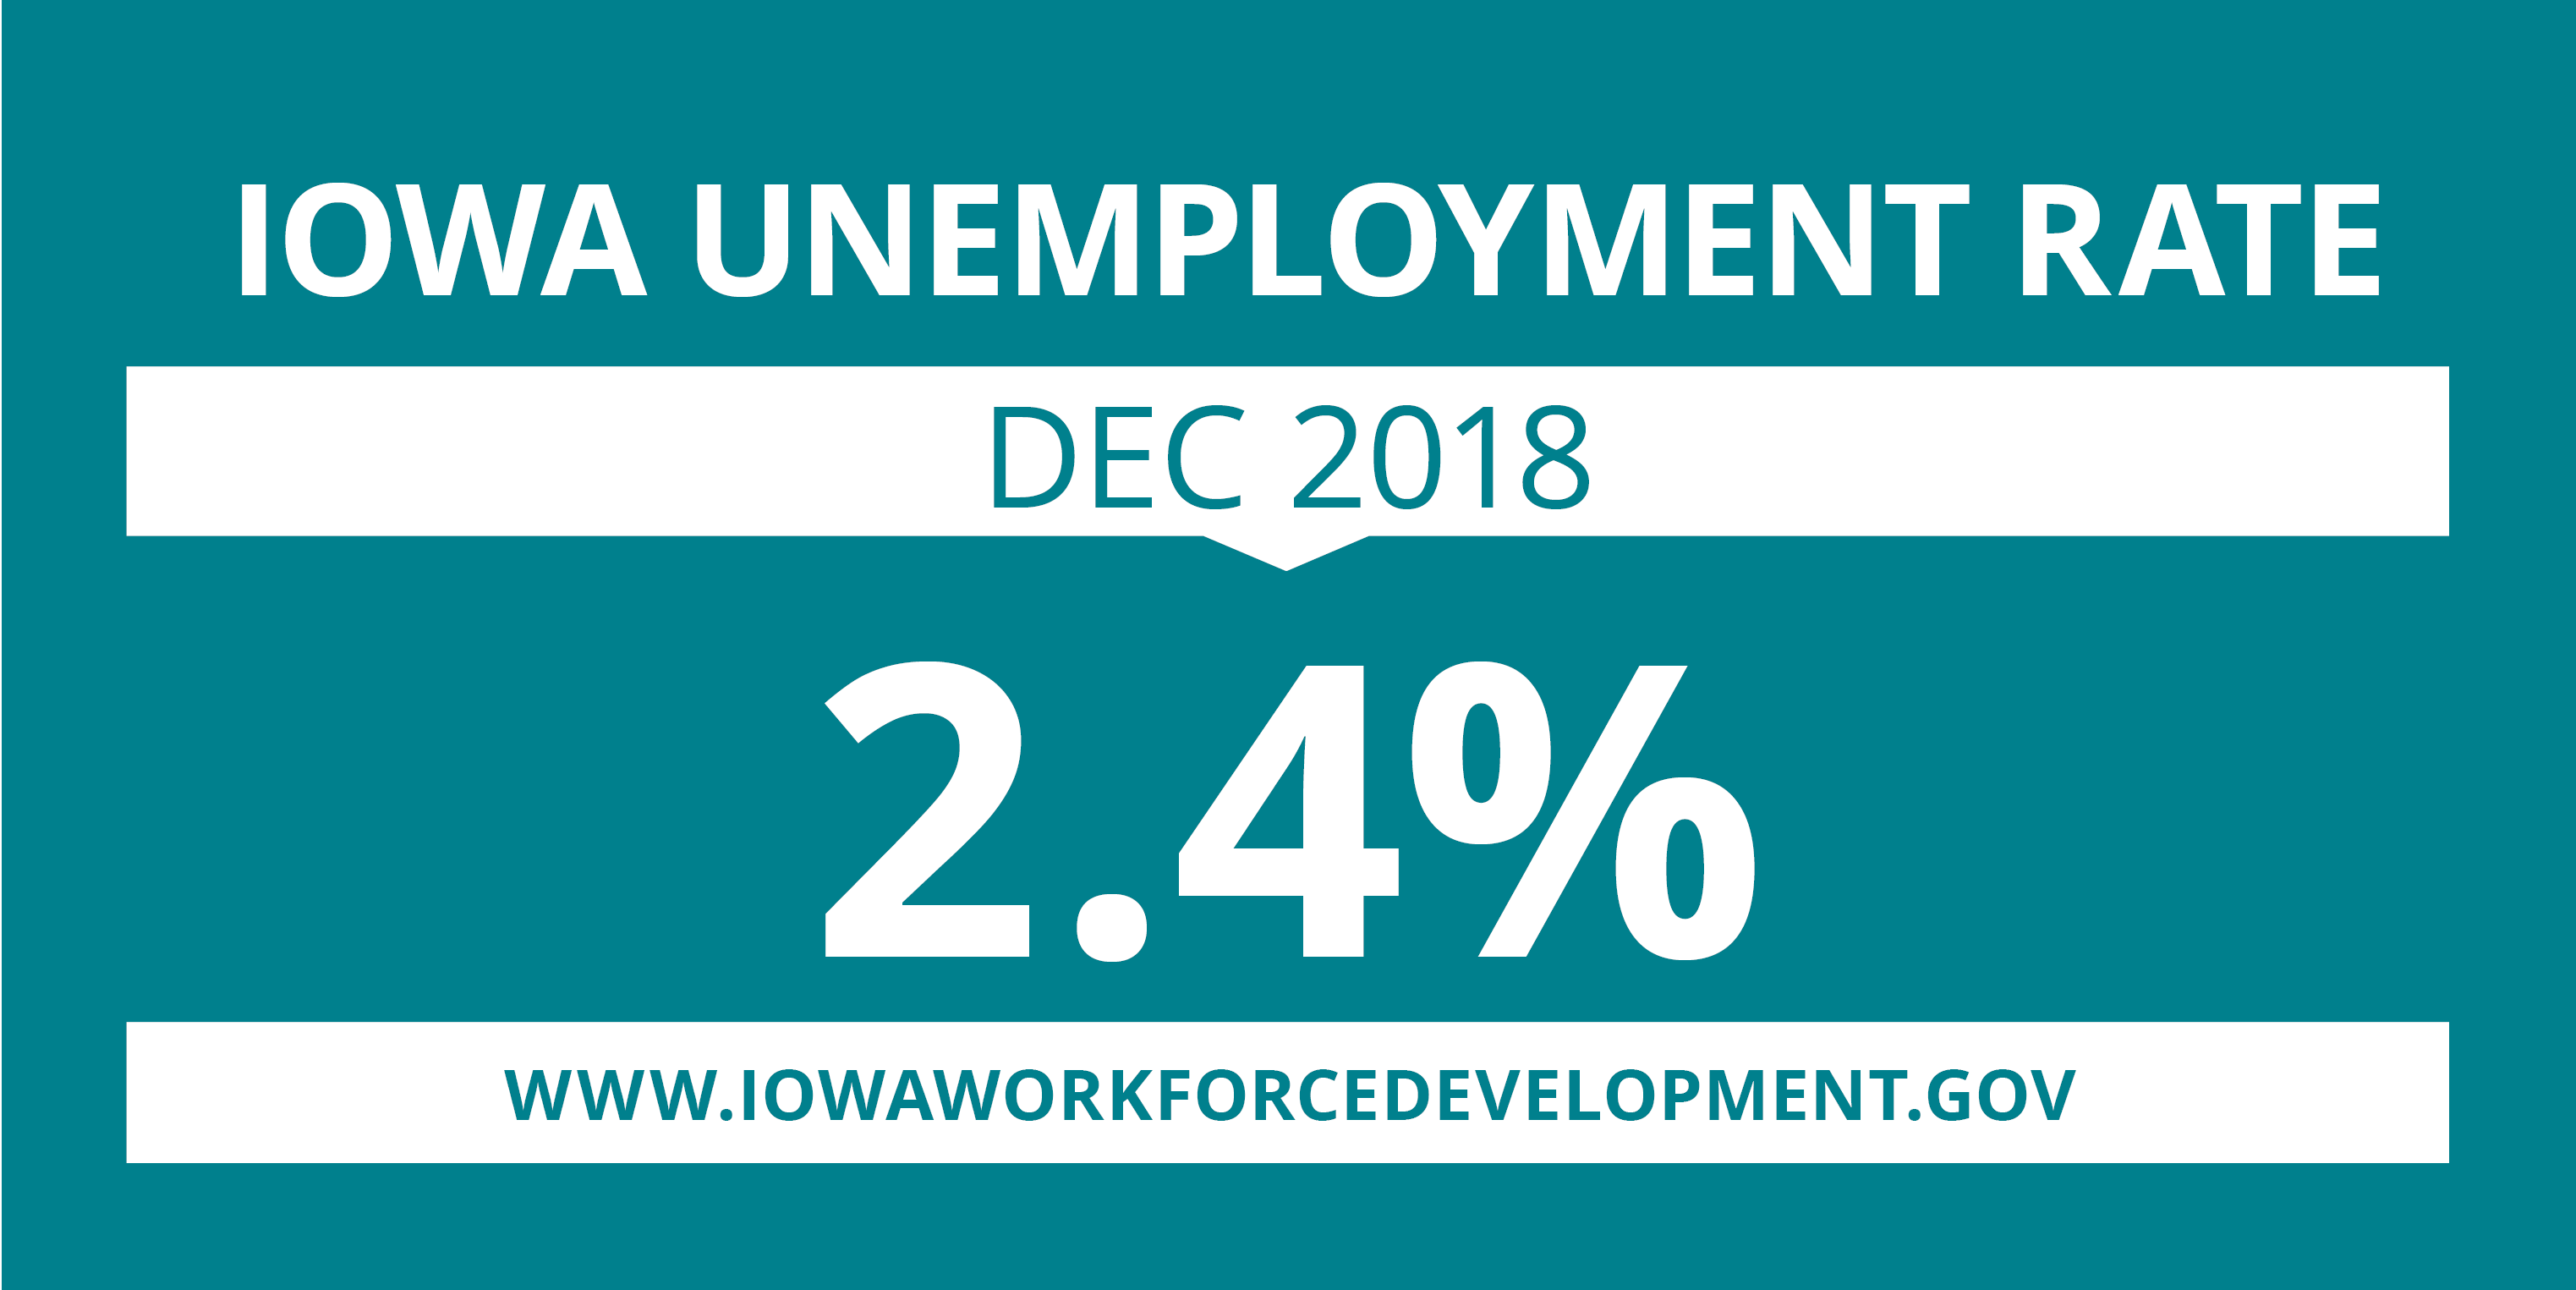 Iowa's unemployment rate remains at 2.4 percent for December 2018.